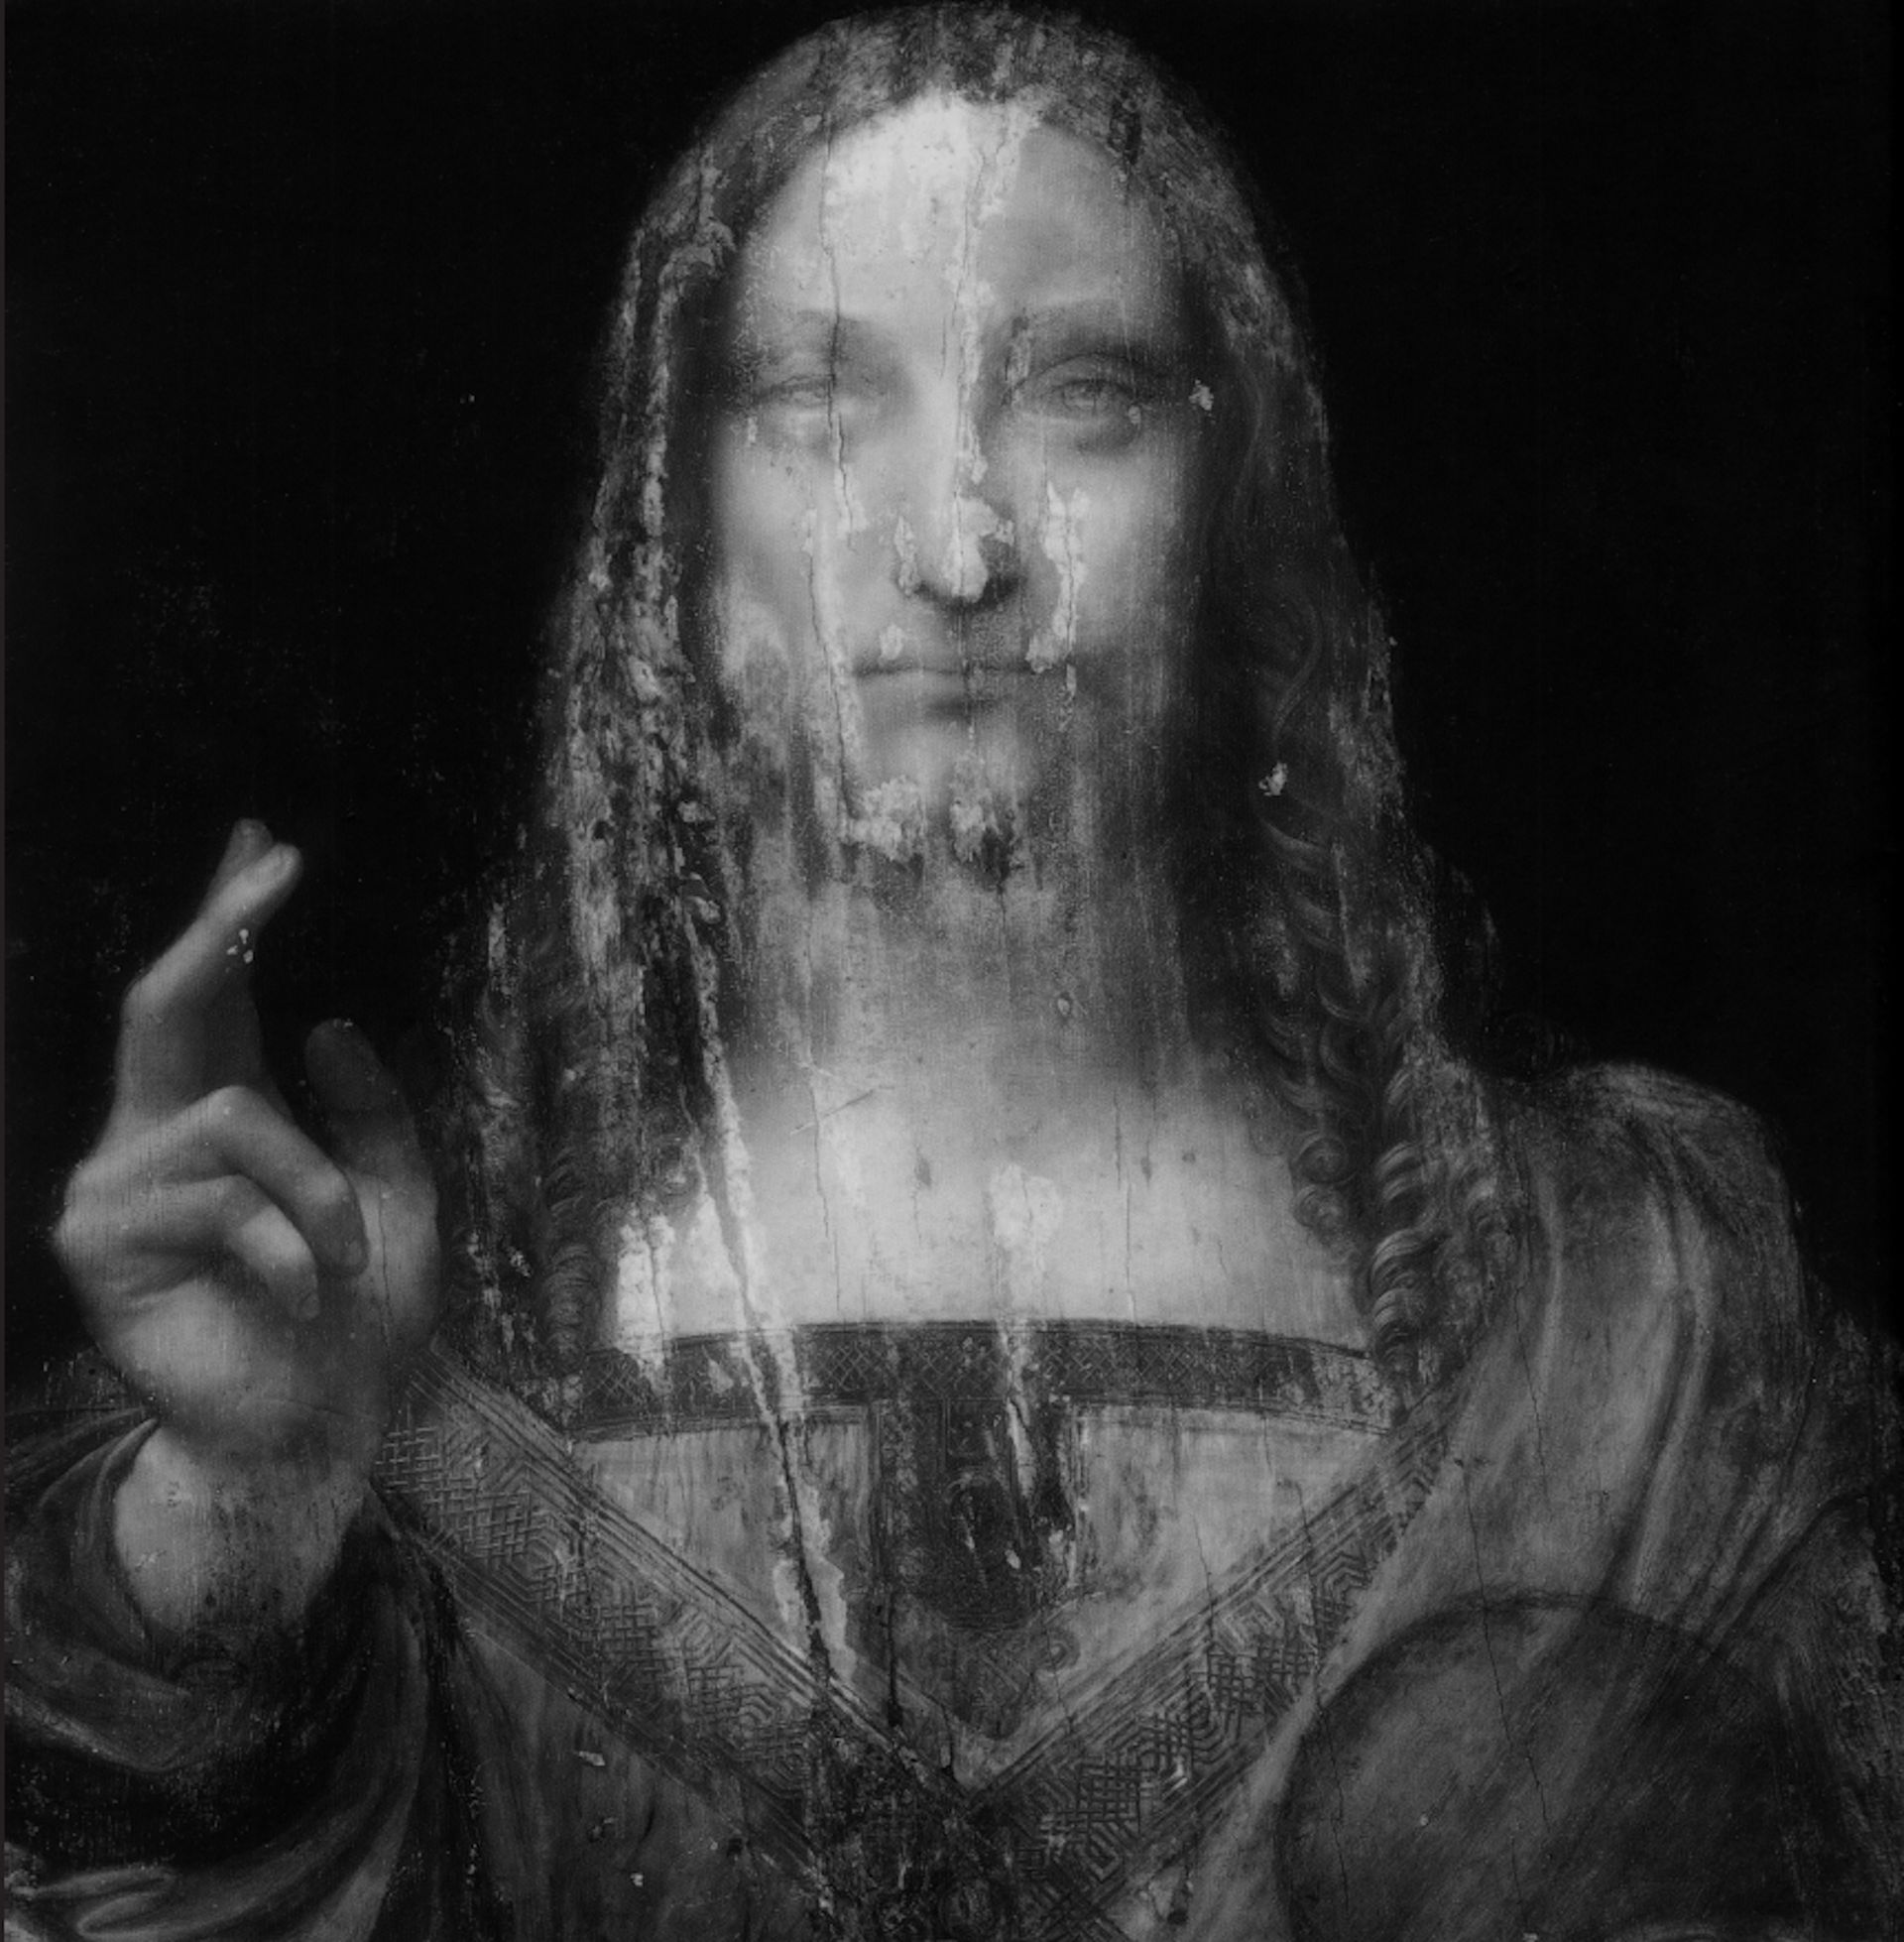 The back page of the book is the full-bleed of the infra-red reflectography of the Salvator Mundi